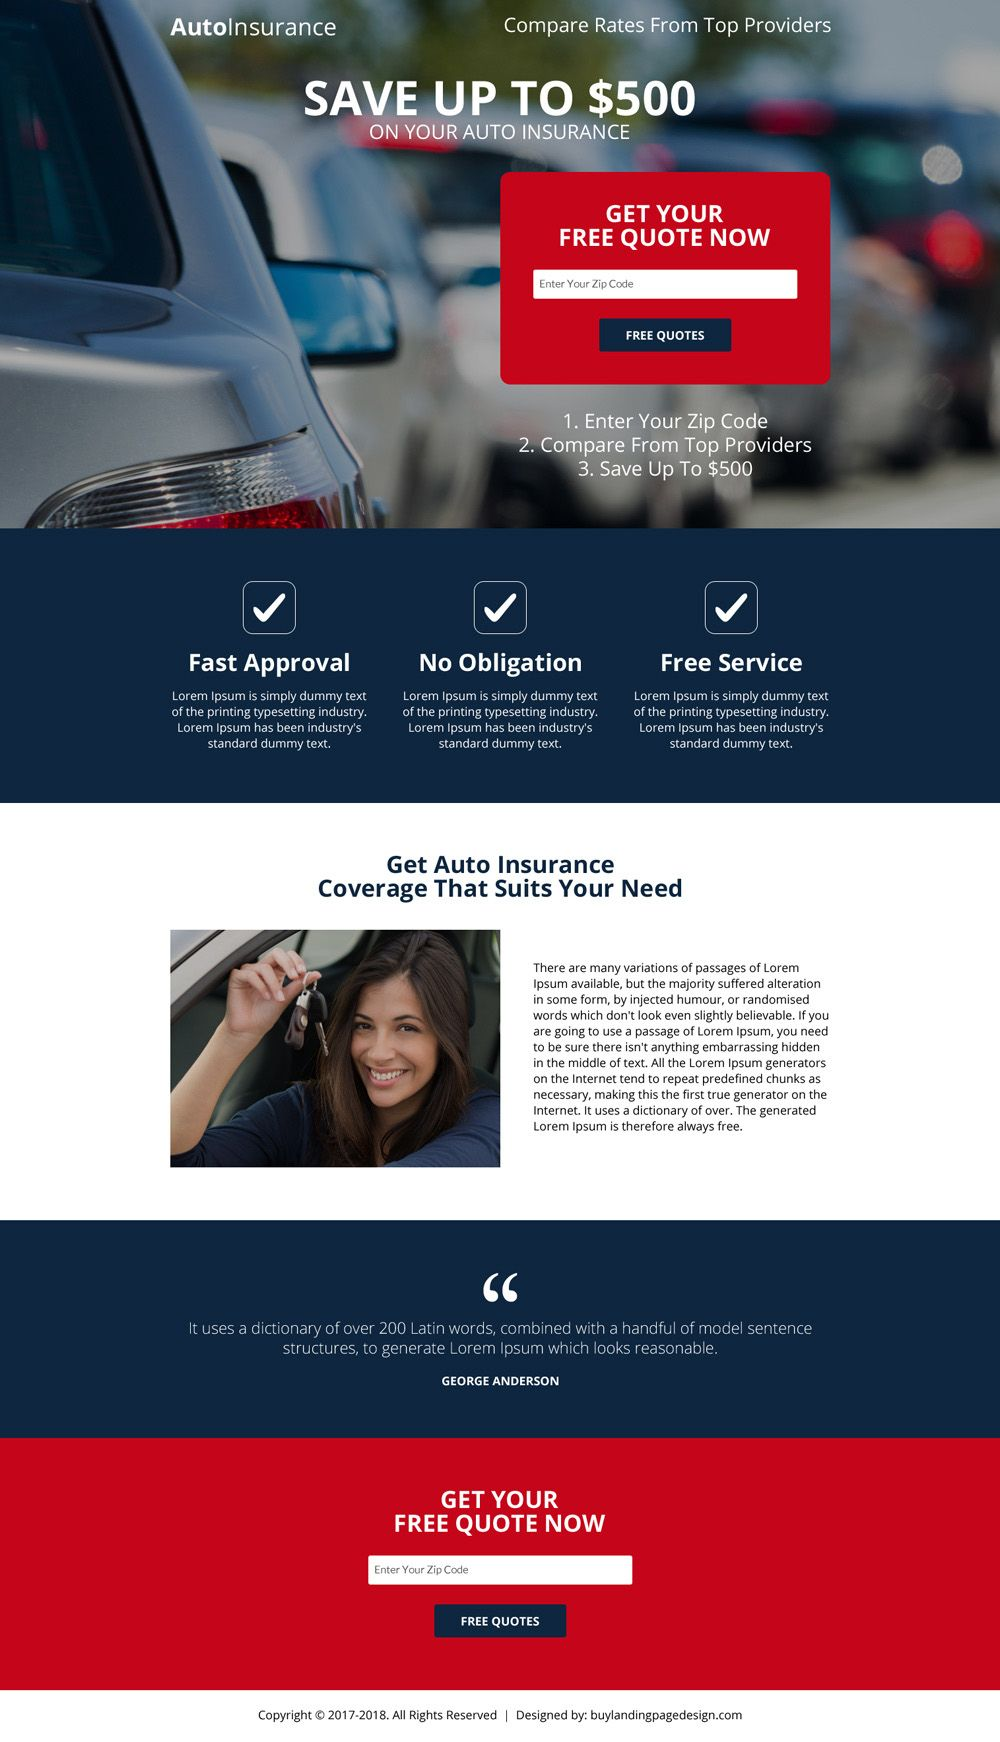 Free Auto Insurance Appealing Landing Page Design Car Insurance Auto Insurance Quotes Insurance